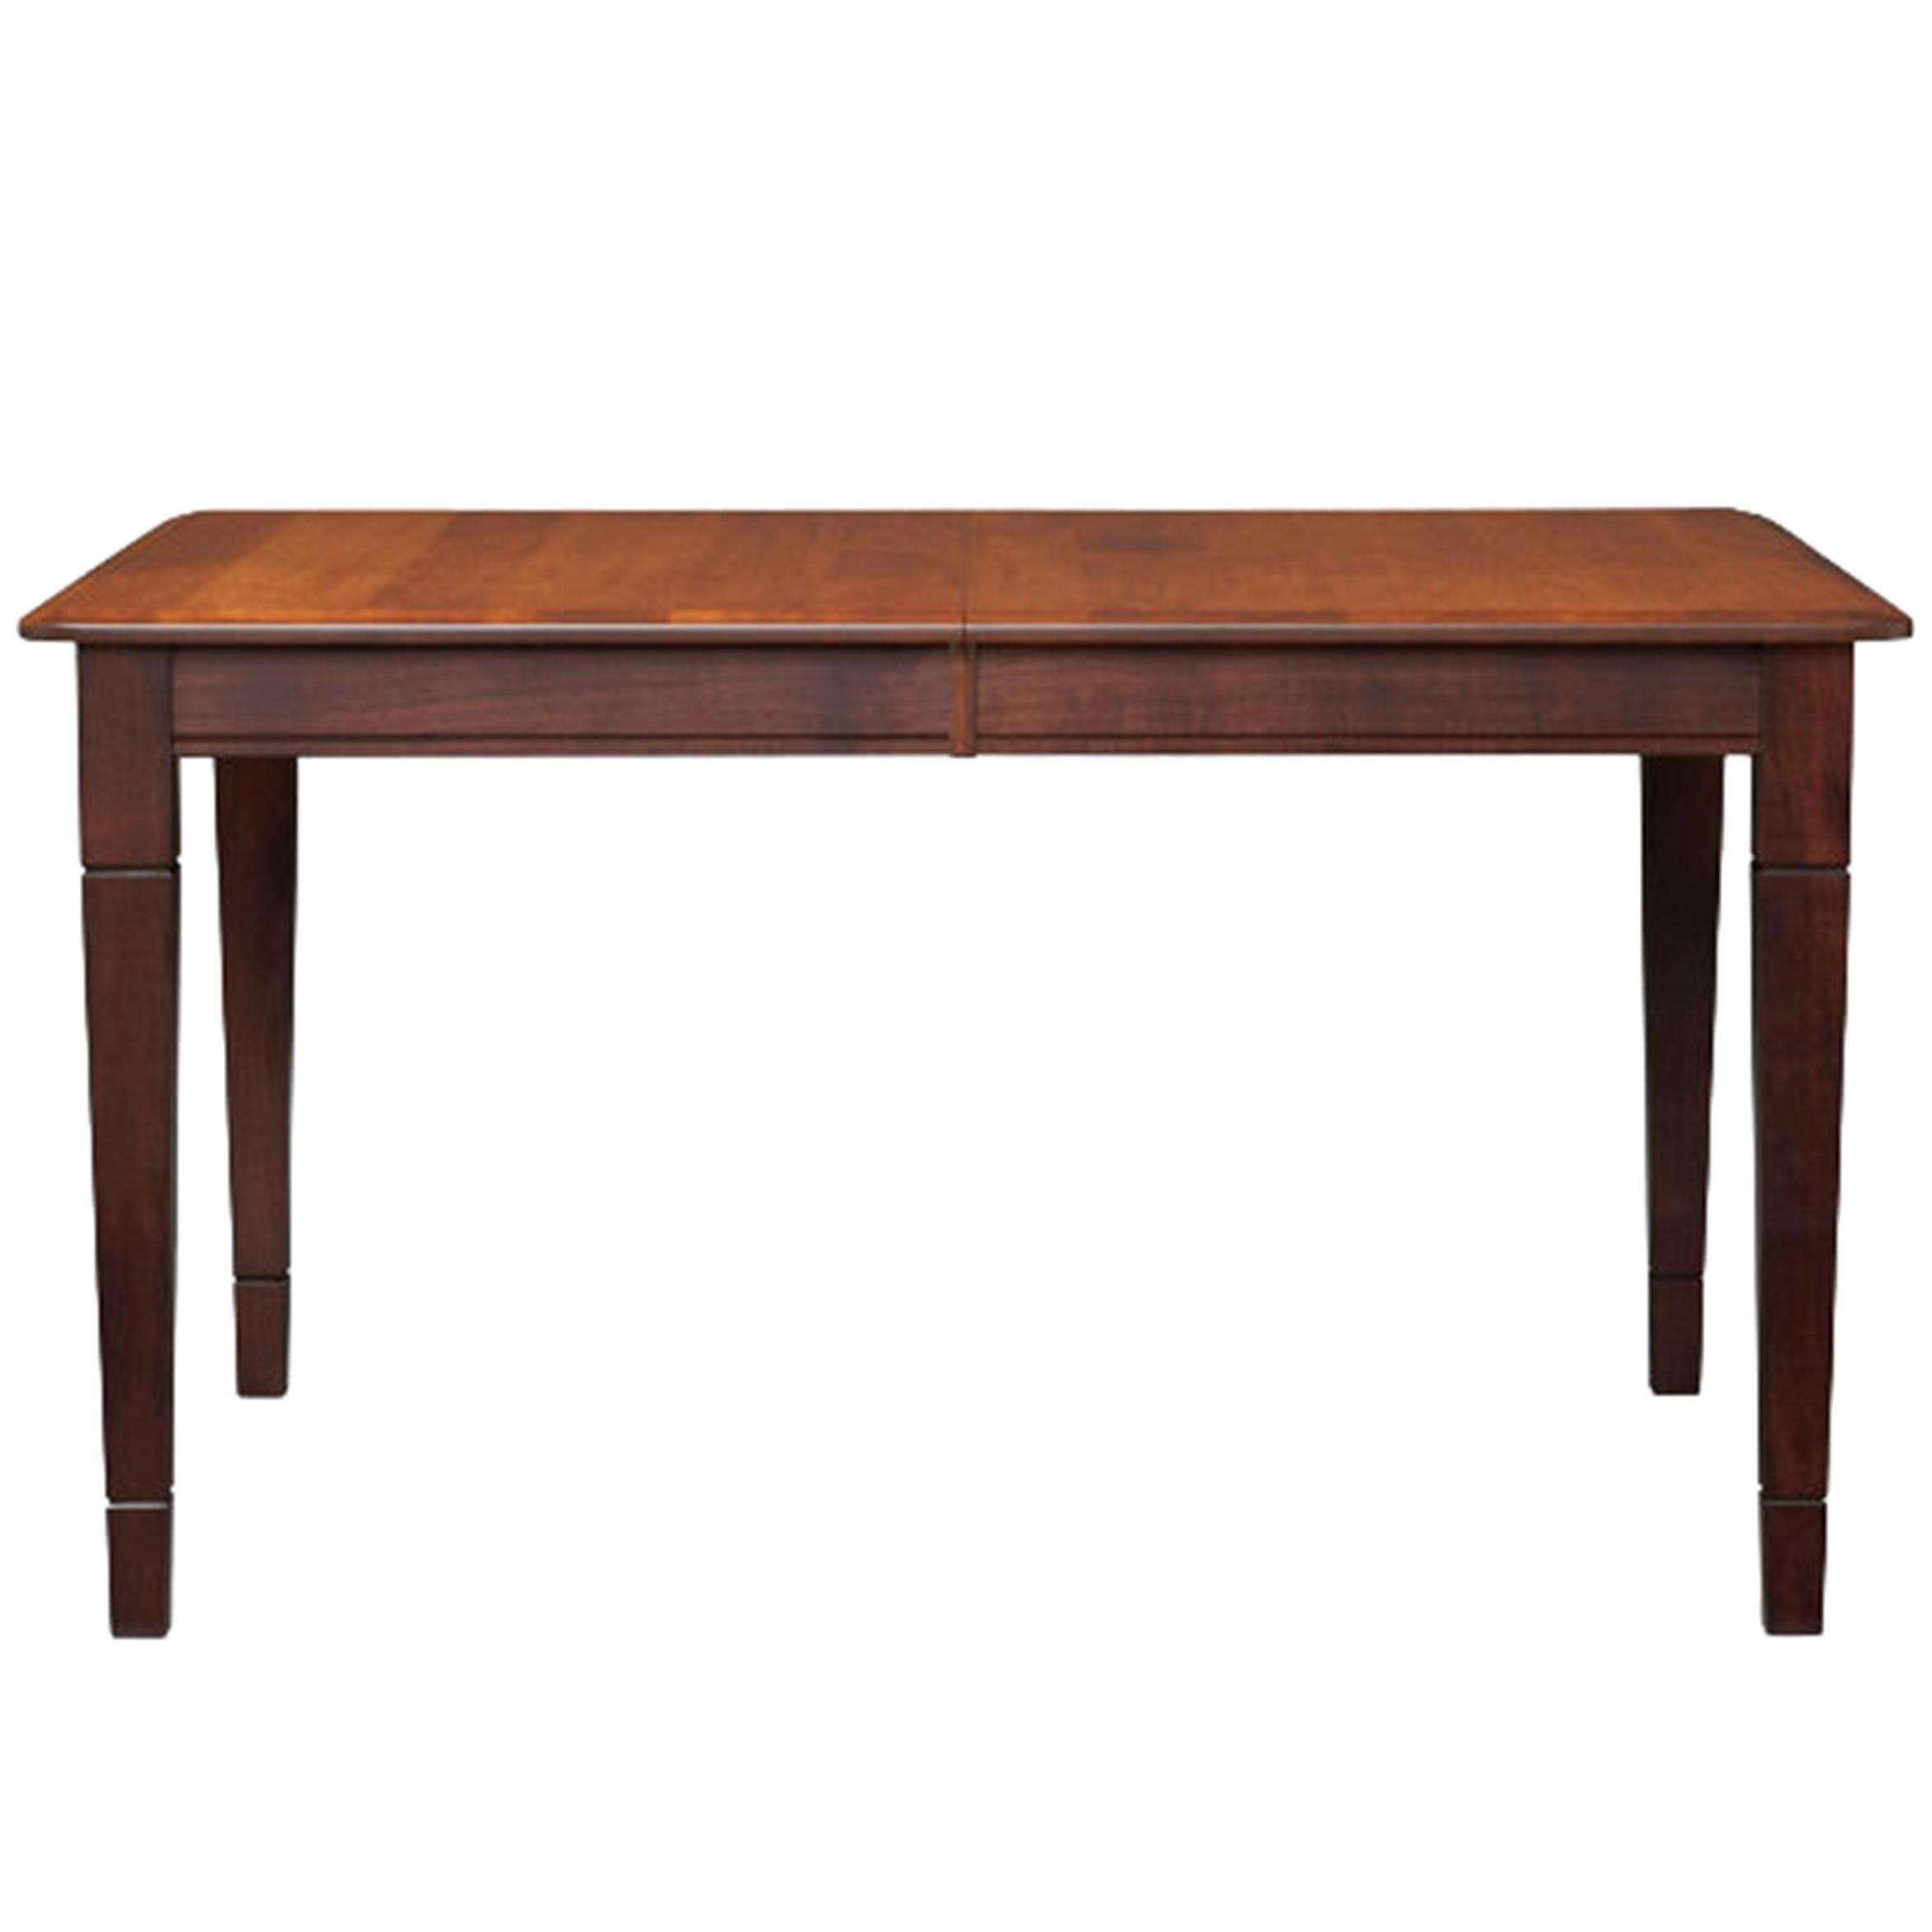 L j gascho furniture anniversary ii dining table with for Dining room tables 0 finance